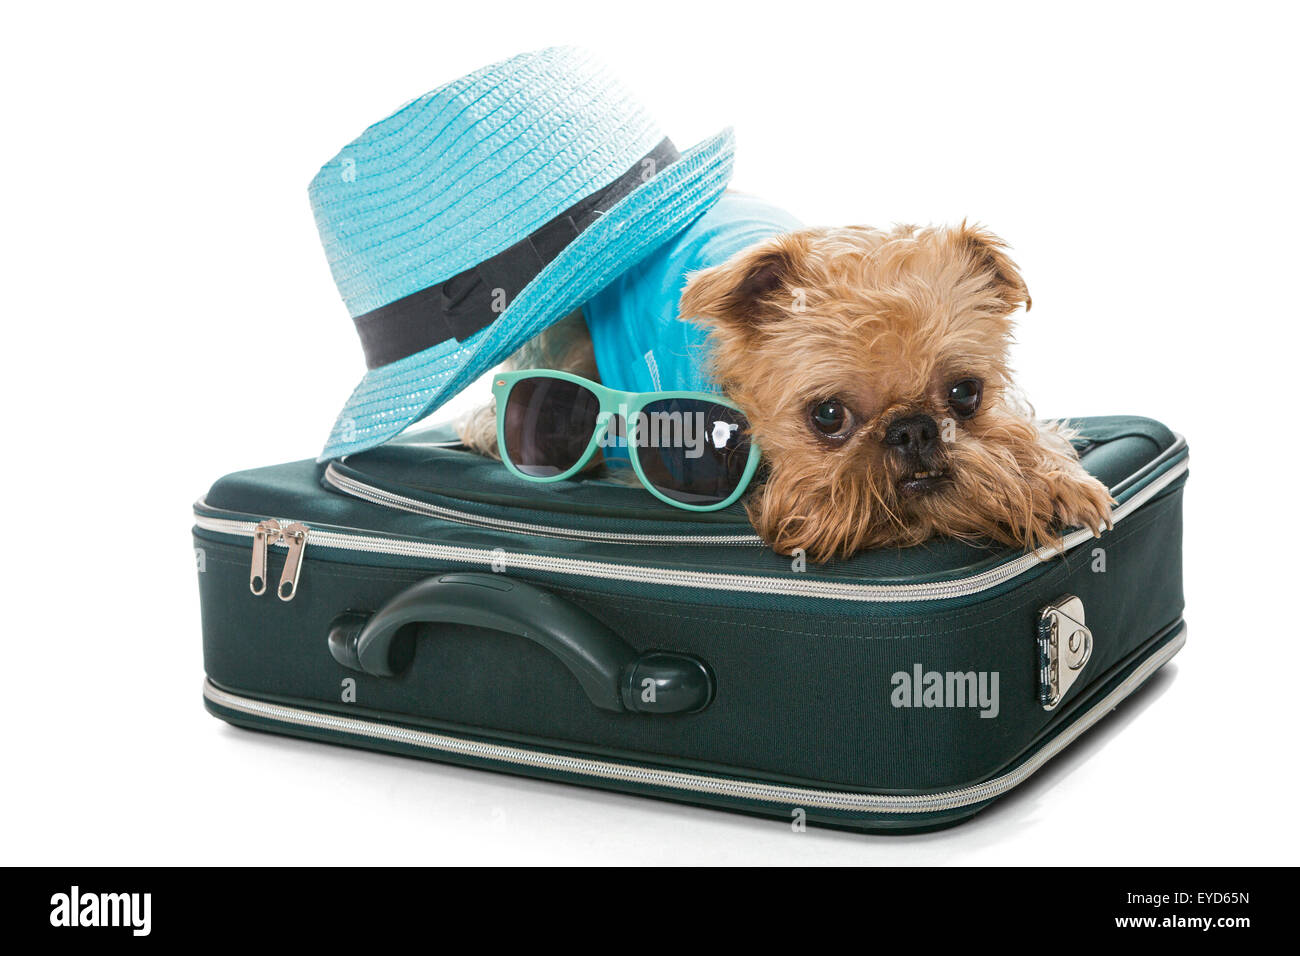 Dog breed Brussels Griffon and a travel suitcase, isolated on white - Stock Image